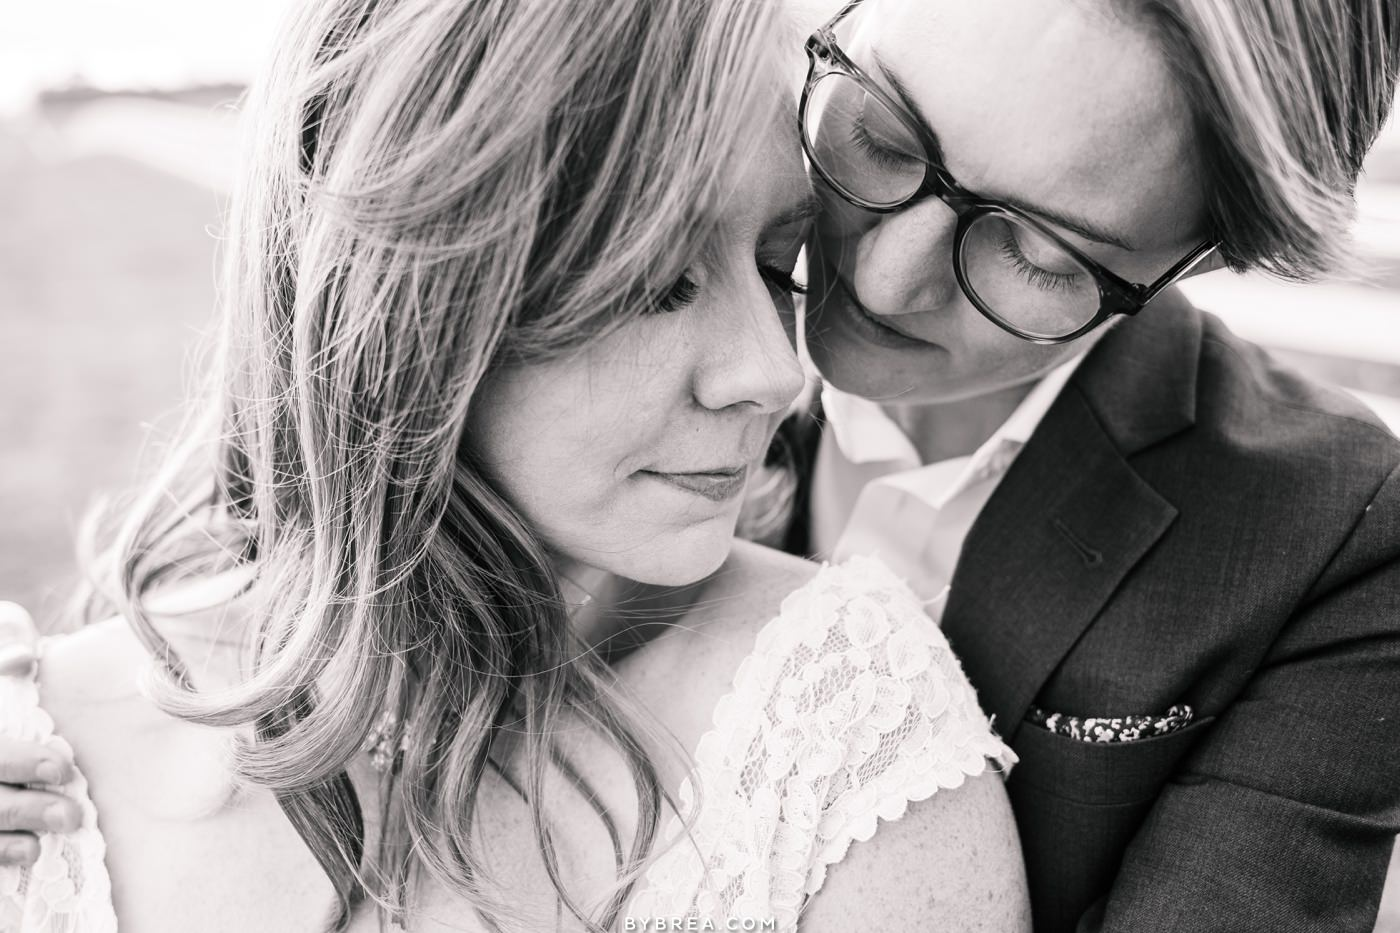 Tusculum Farm wedding photo of brides embracing each other